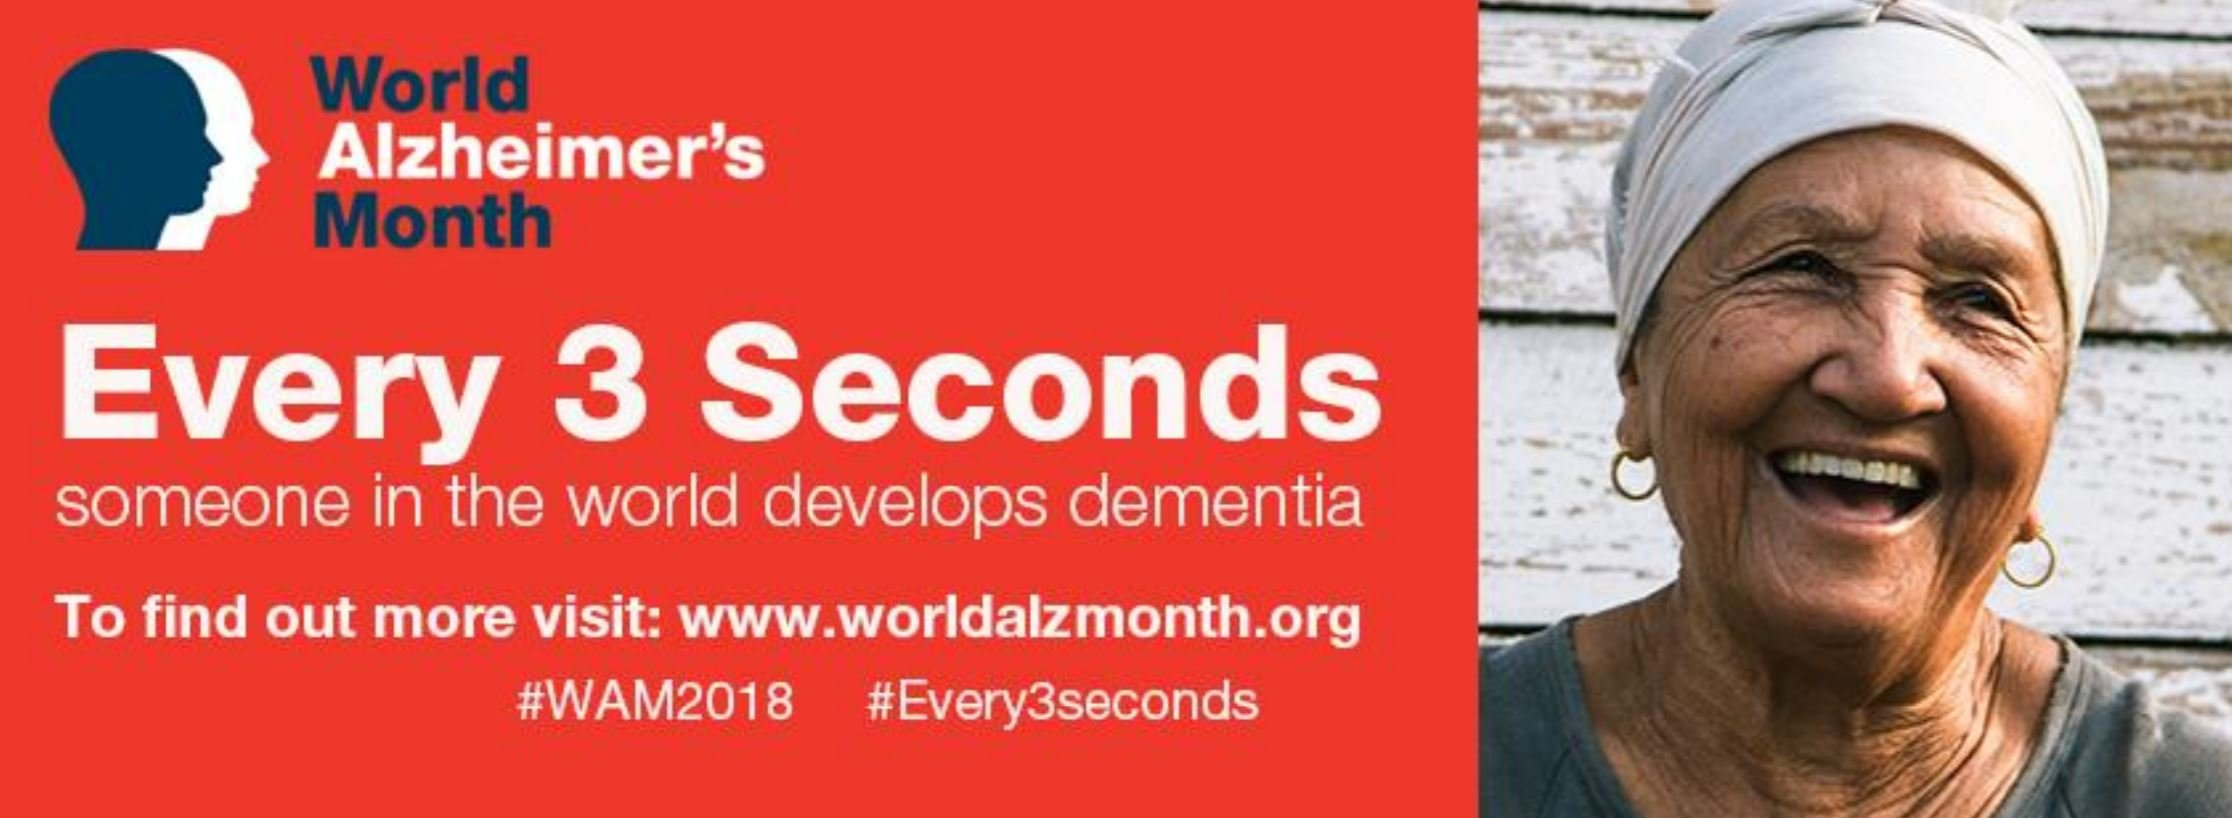 Join us for World Alzheimer's Month September 2018